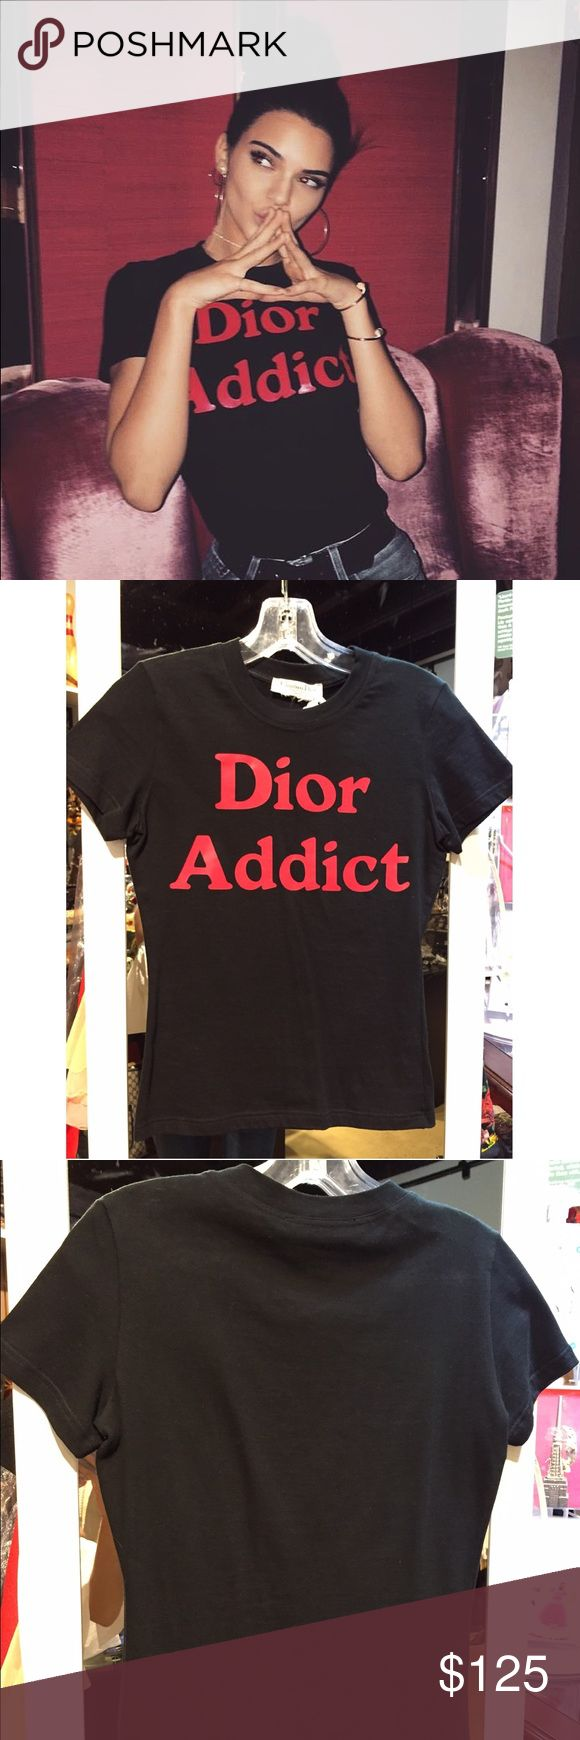 Dior Addict red print on black t-shirt As seen on Kendall Jenner! Dior Addict t-shirt from Christian Dior. Size xs and in great condition Christian Dior Tops Tees - Short Sleeve